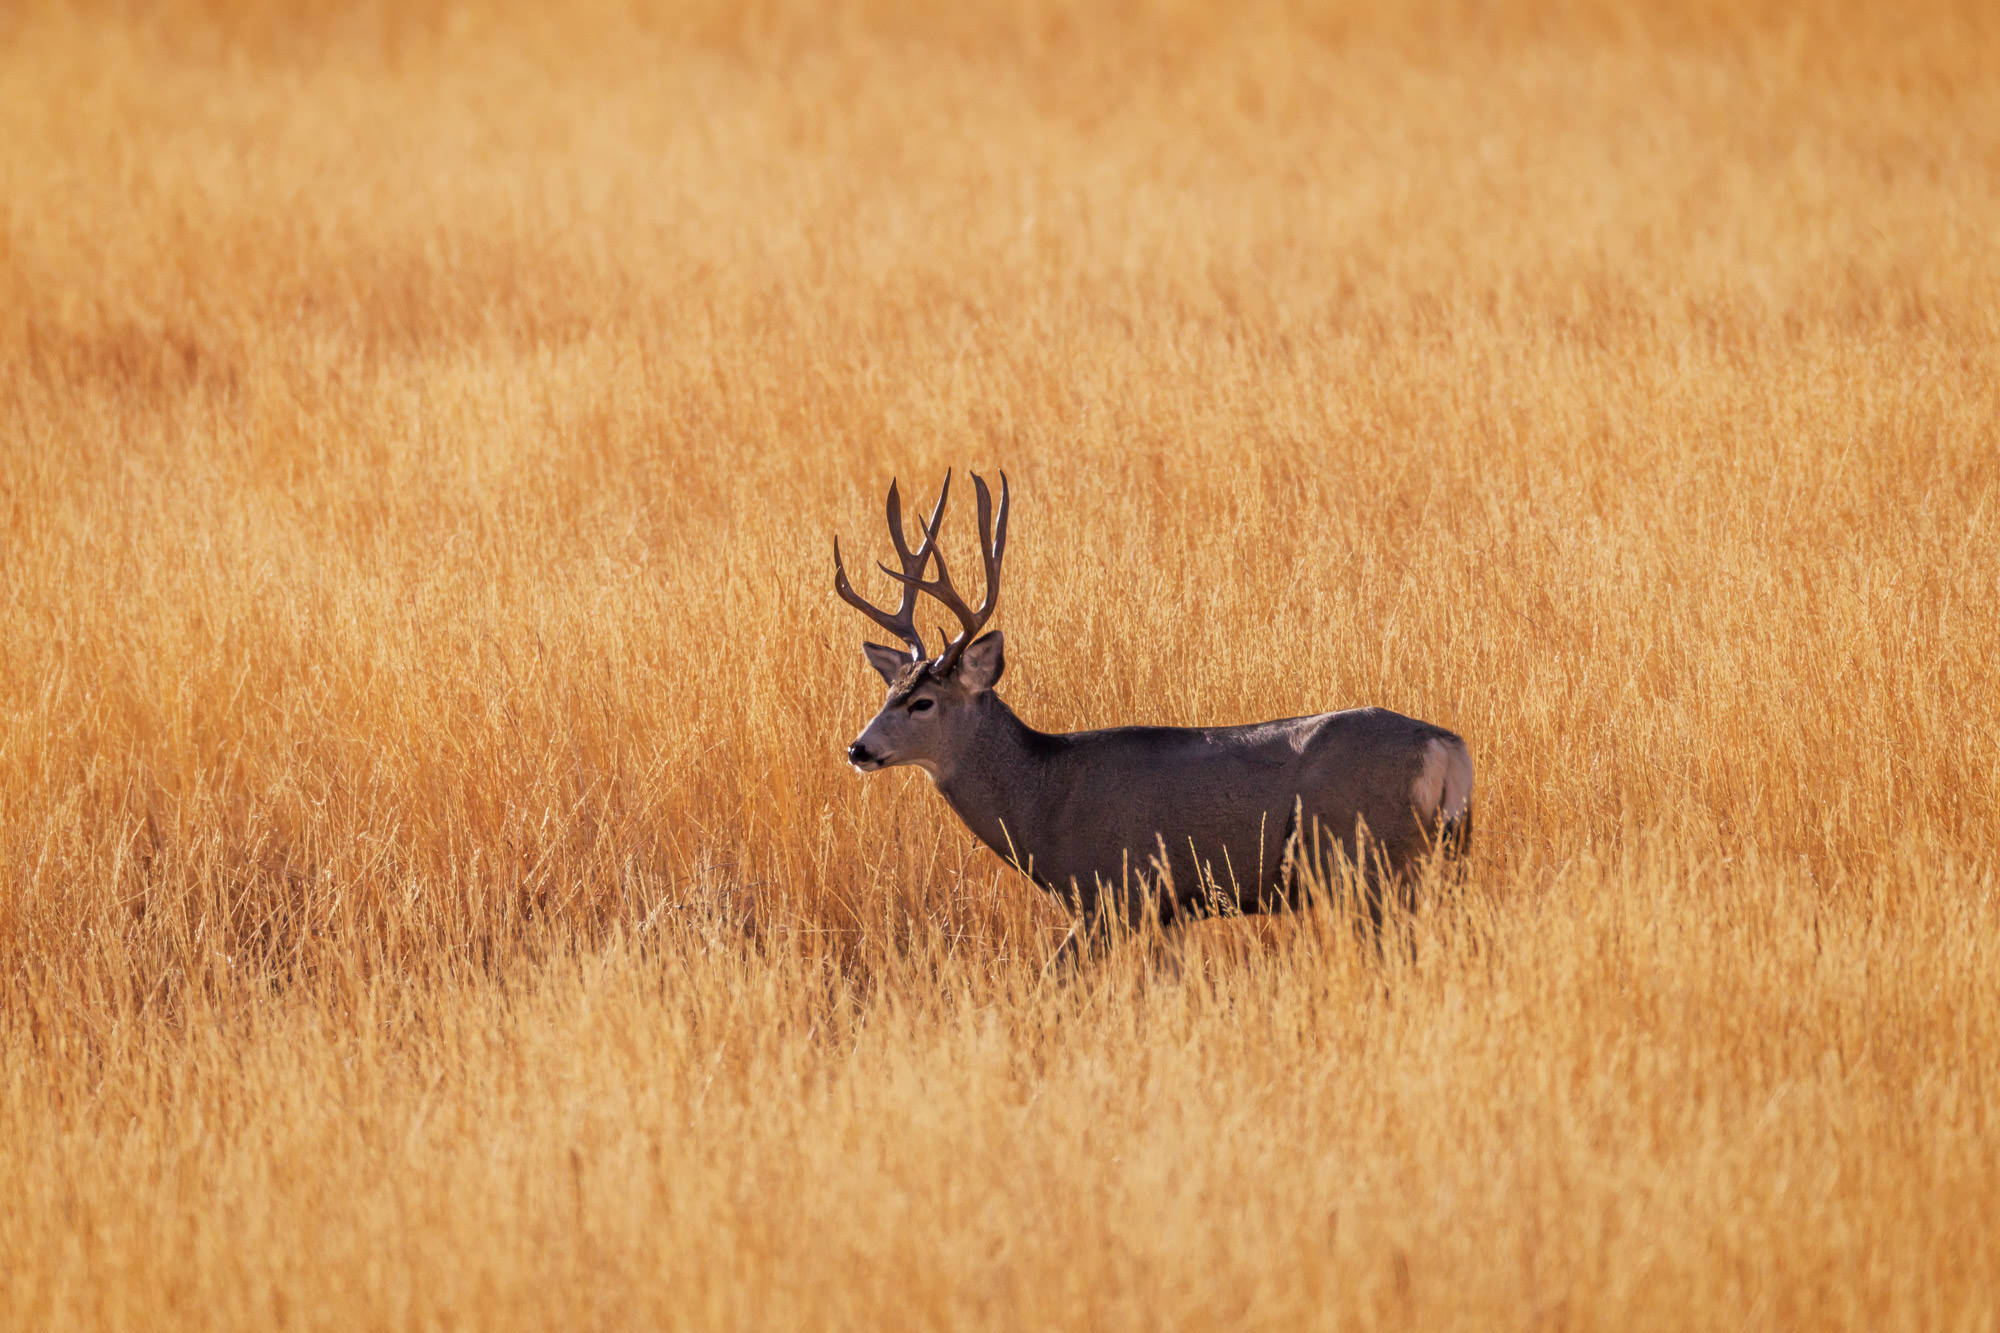 Deer, Mule Deer, Buck, Wyoming, Whiskey Mountain, limited edition, photograph, fine art, wildlife, photo